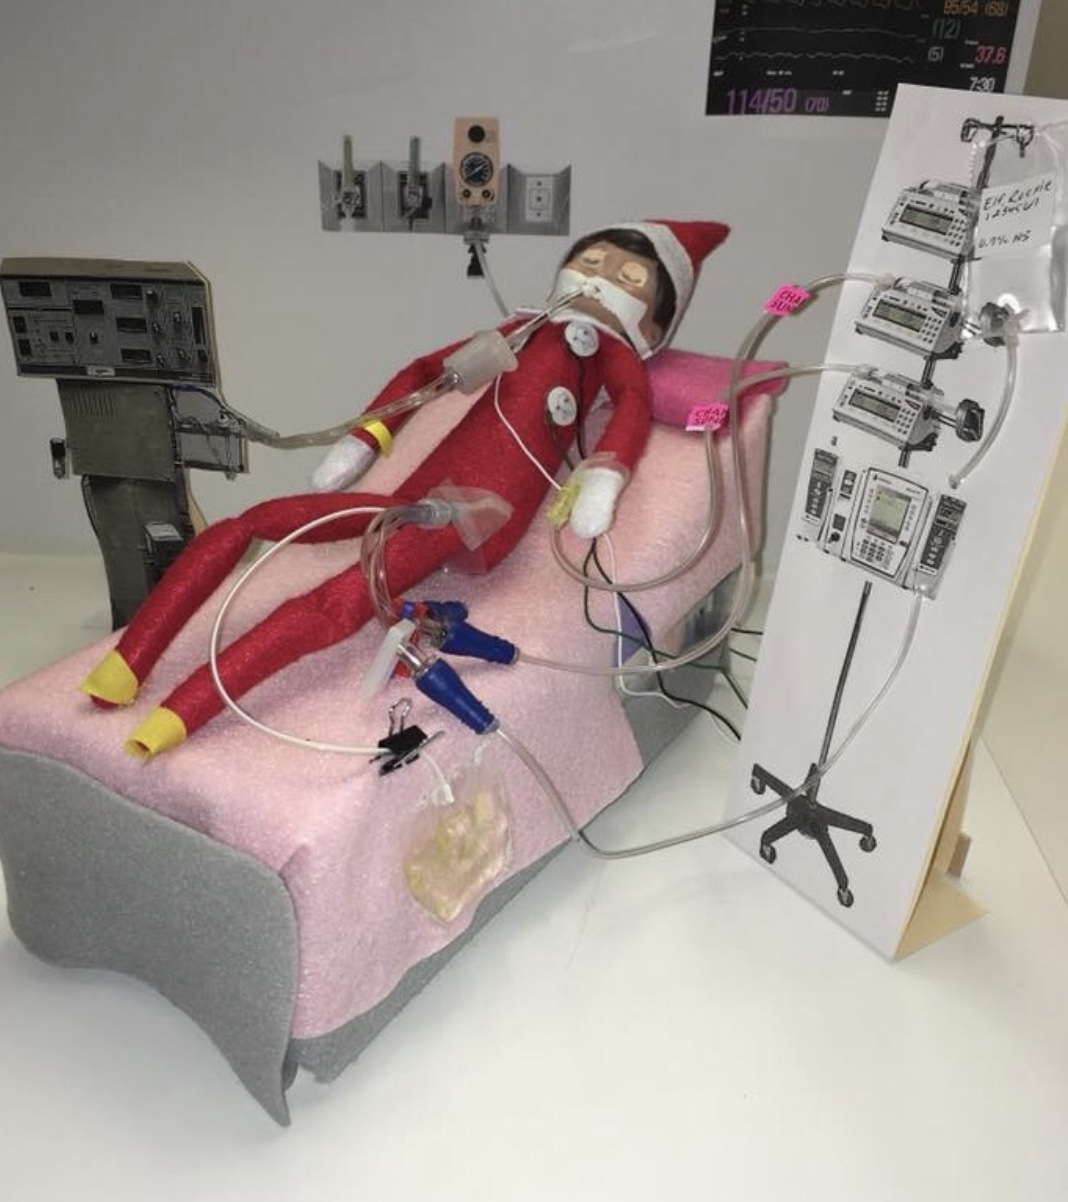 Elf on the Life Support II - This guy has enough sedation, but WHAT DID Y'ALL DO TO HIM?? And the bigger question - what did he do to y'all?